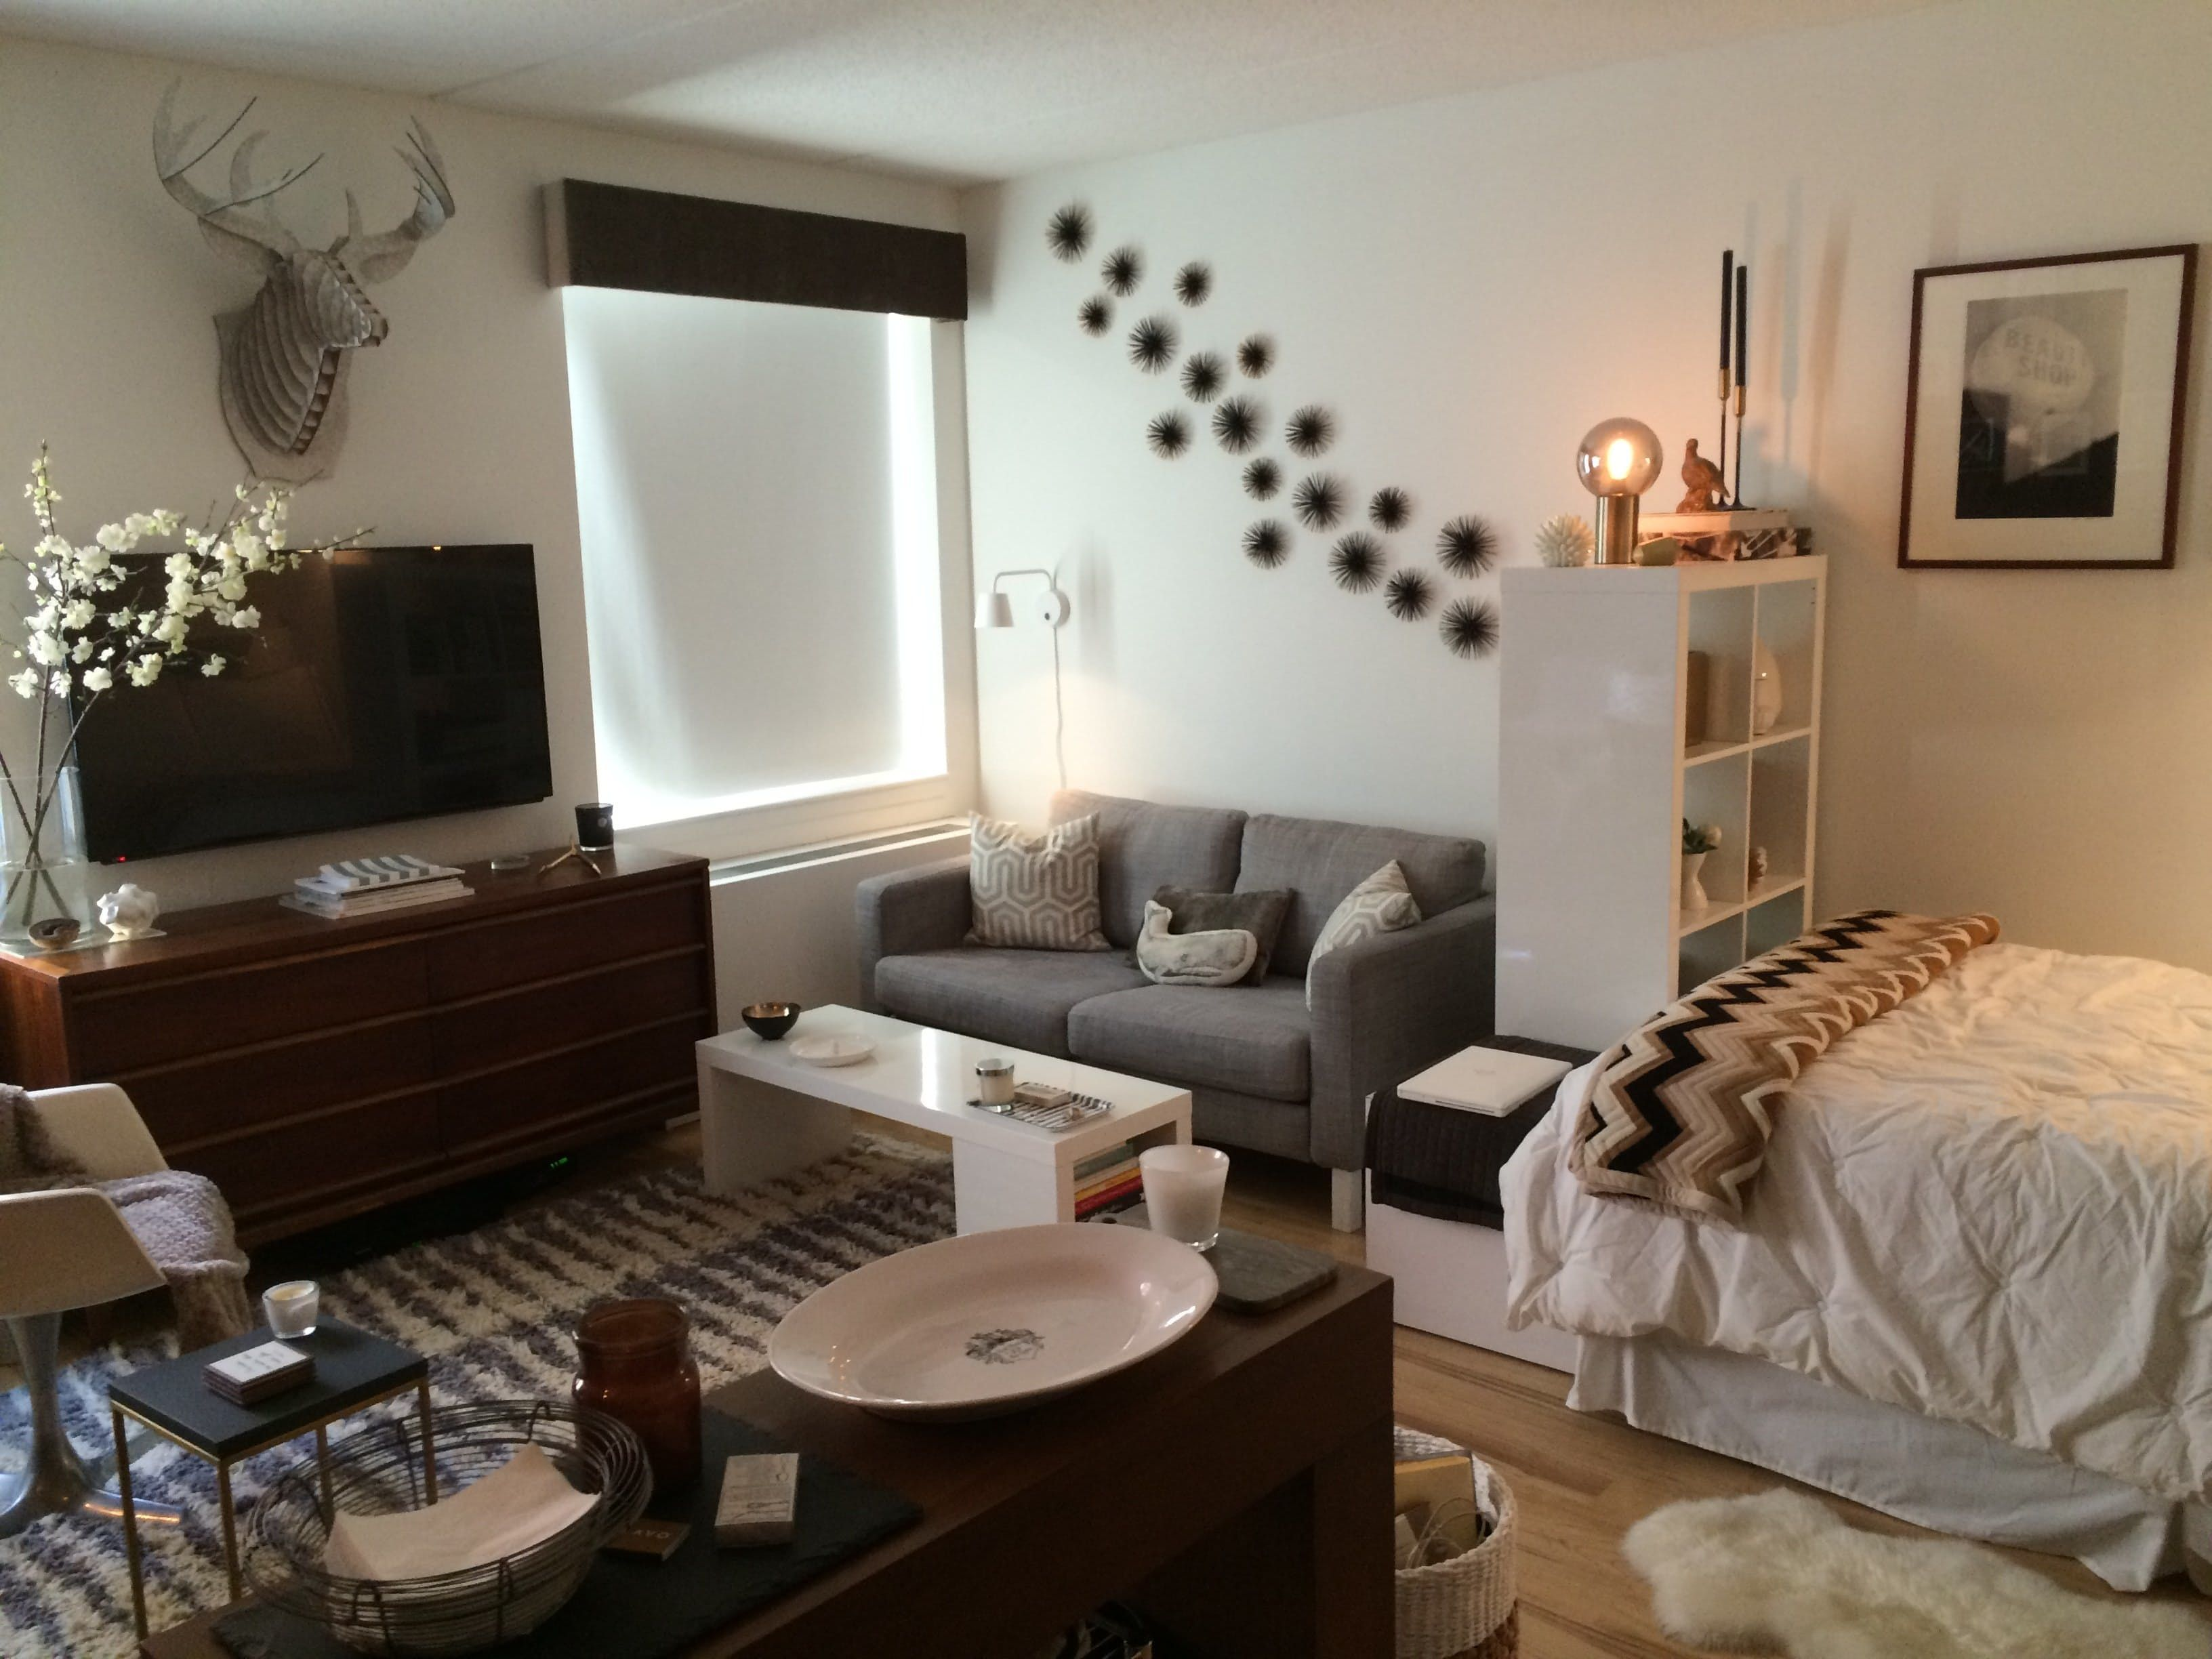 5 Studio Apartment Layouts That Work Renters Solutions